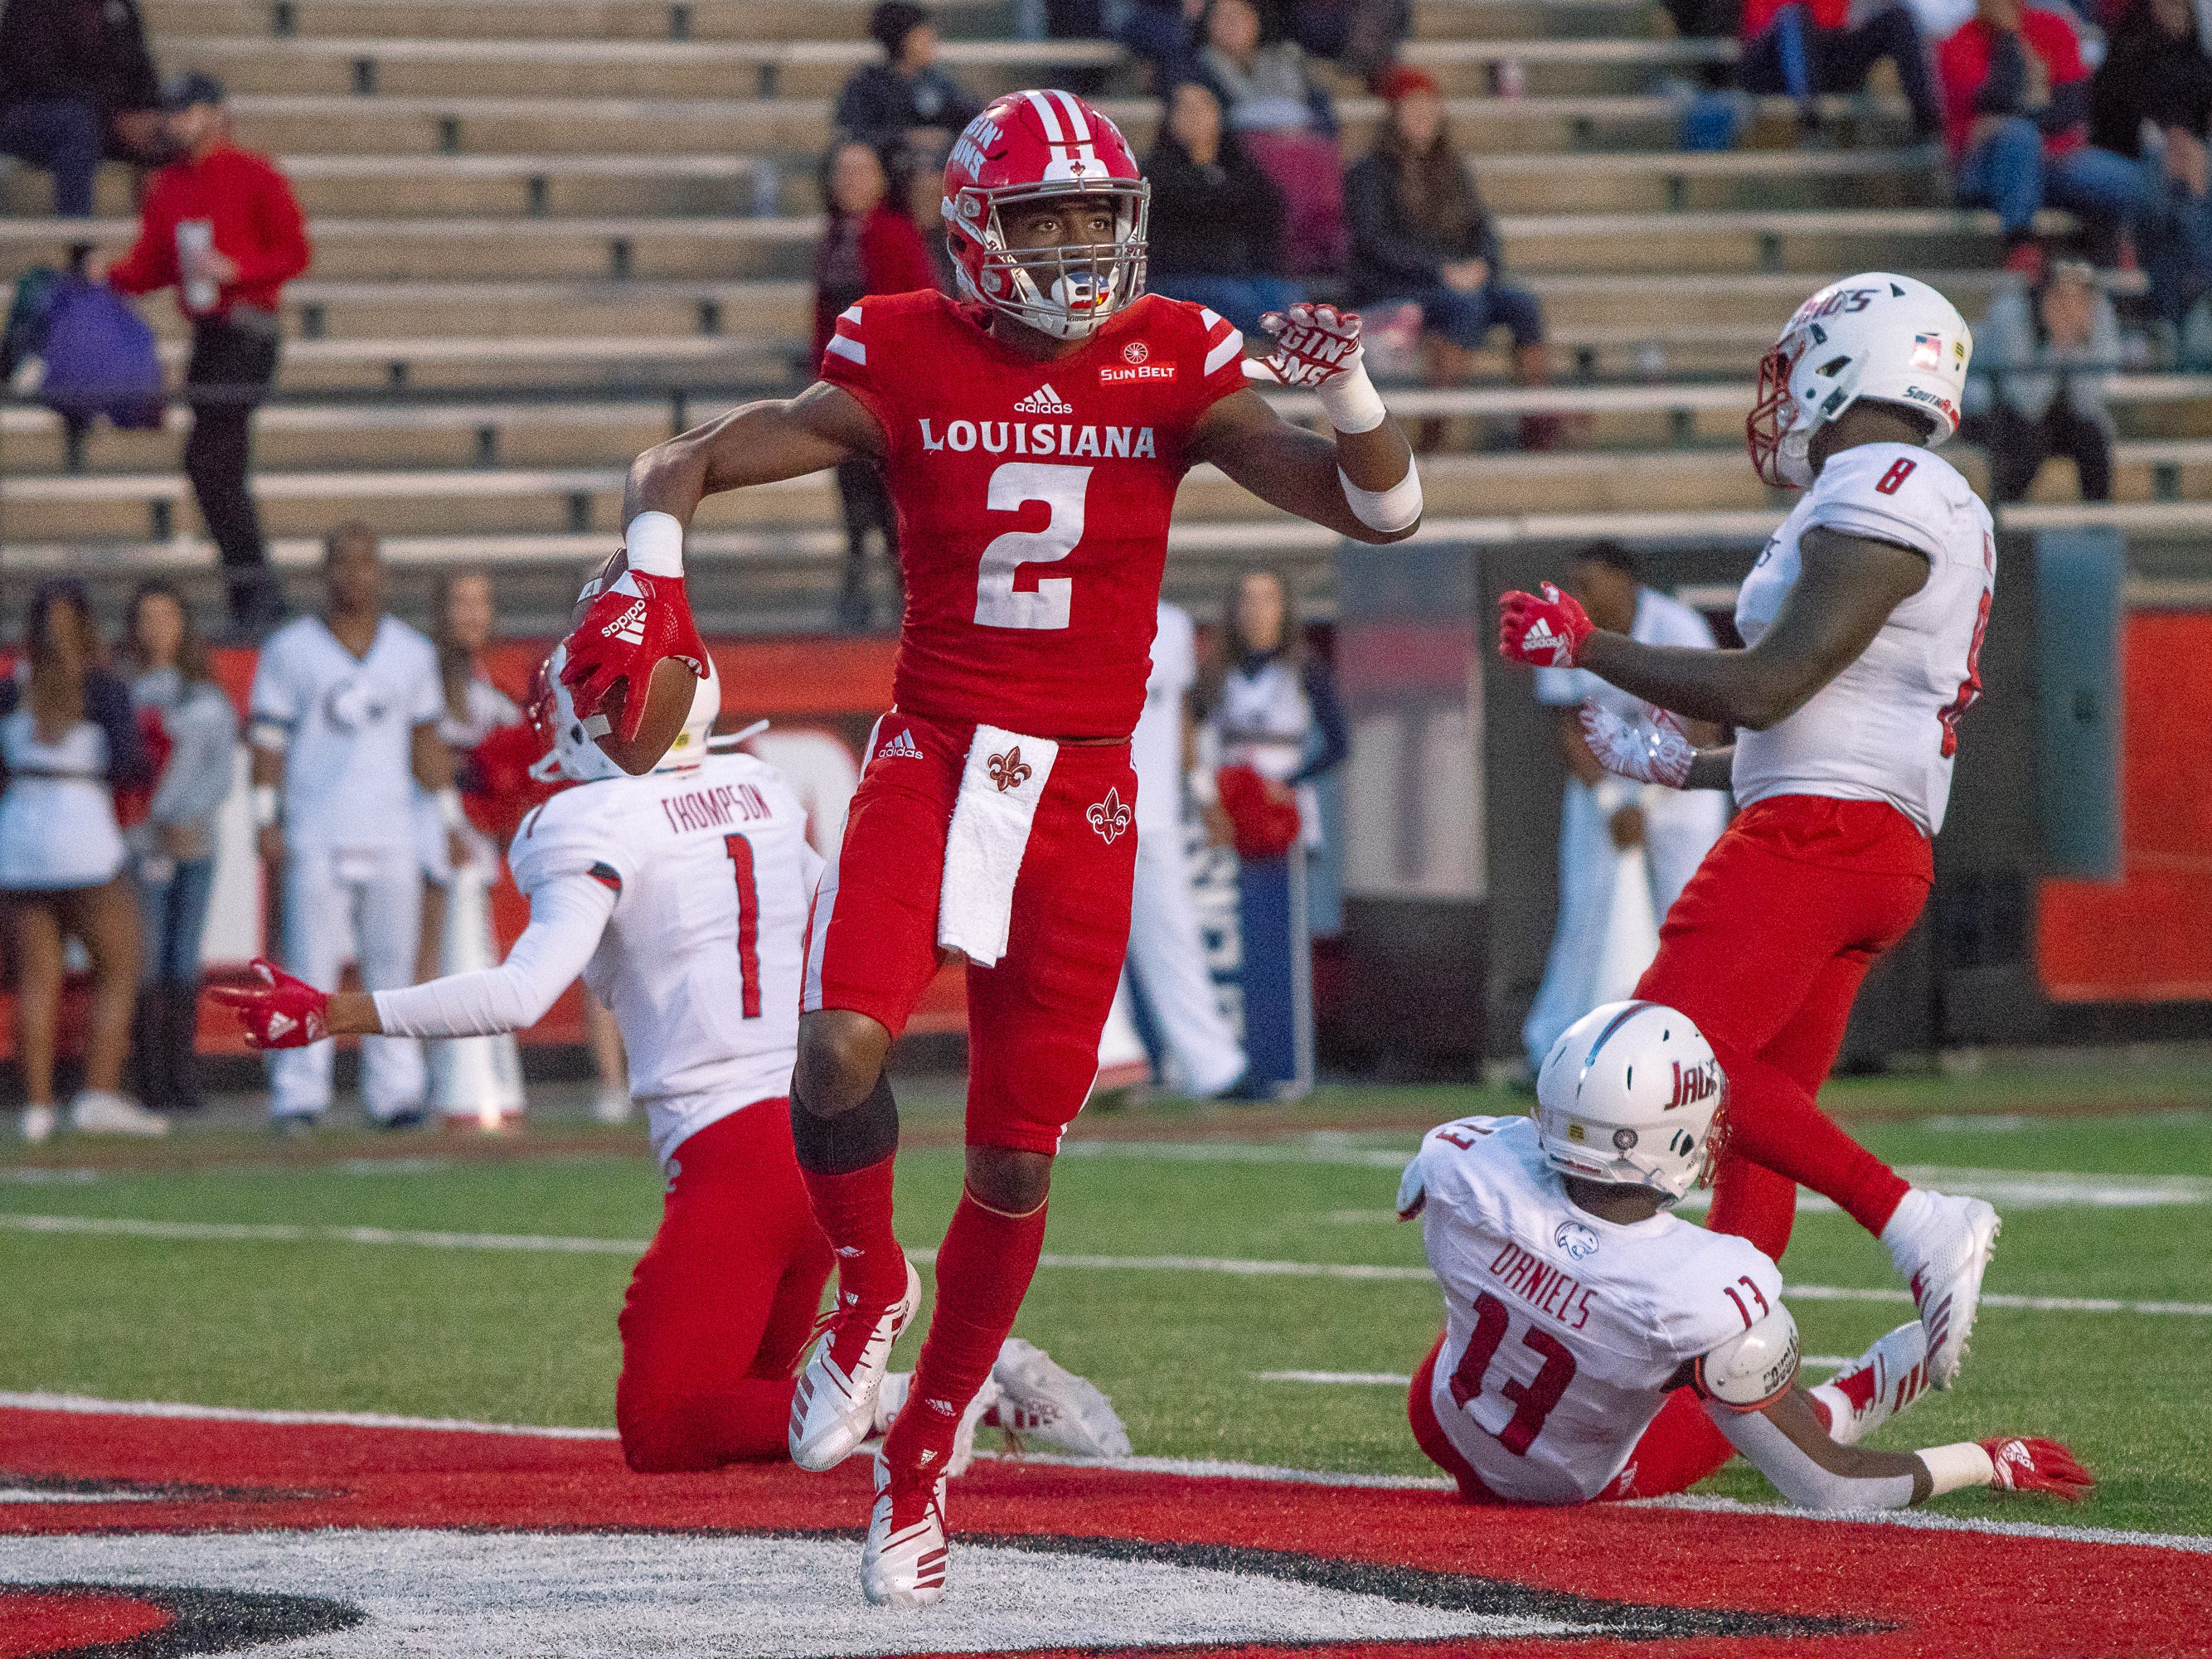 UL's Ja'Marcus Bradley celebrates his touchdown in the endzone as the Ragin' Cajuns play against the South Alabama Jaguars at Cajun Field on November 17, 2018.